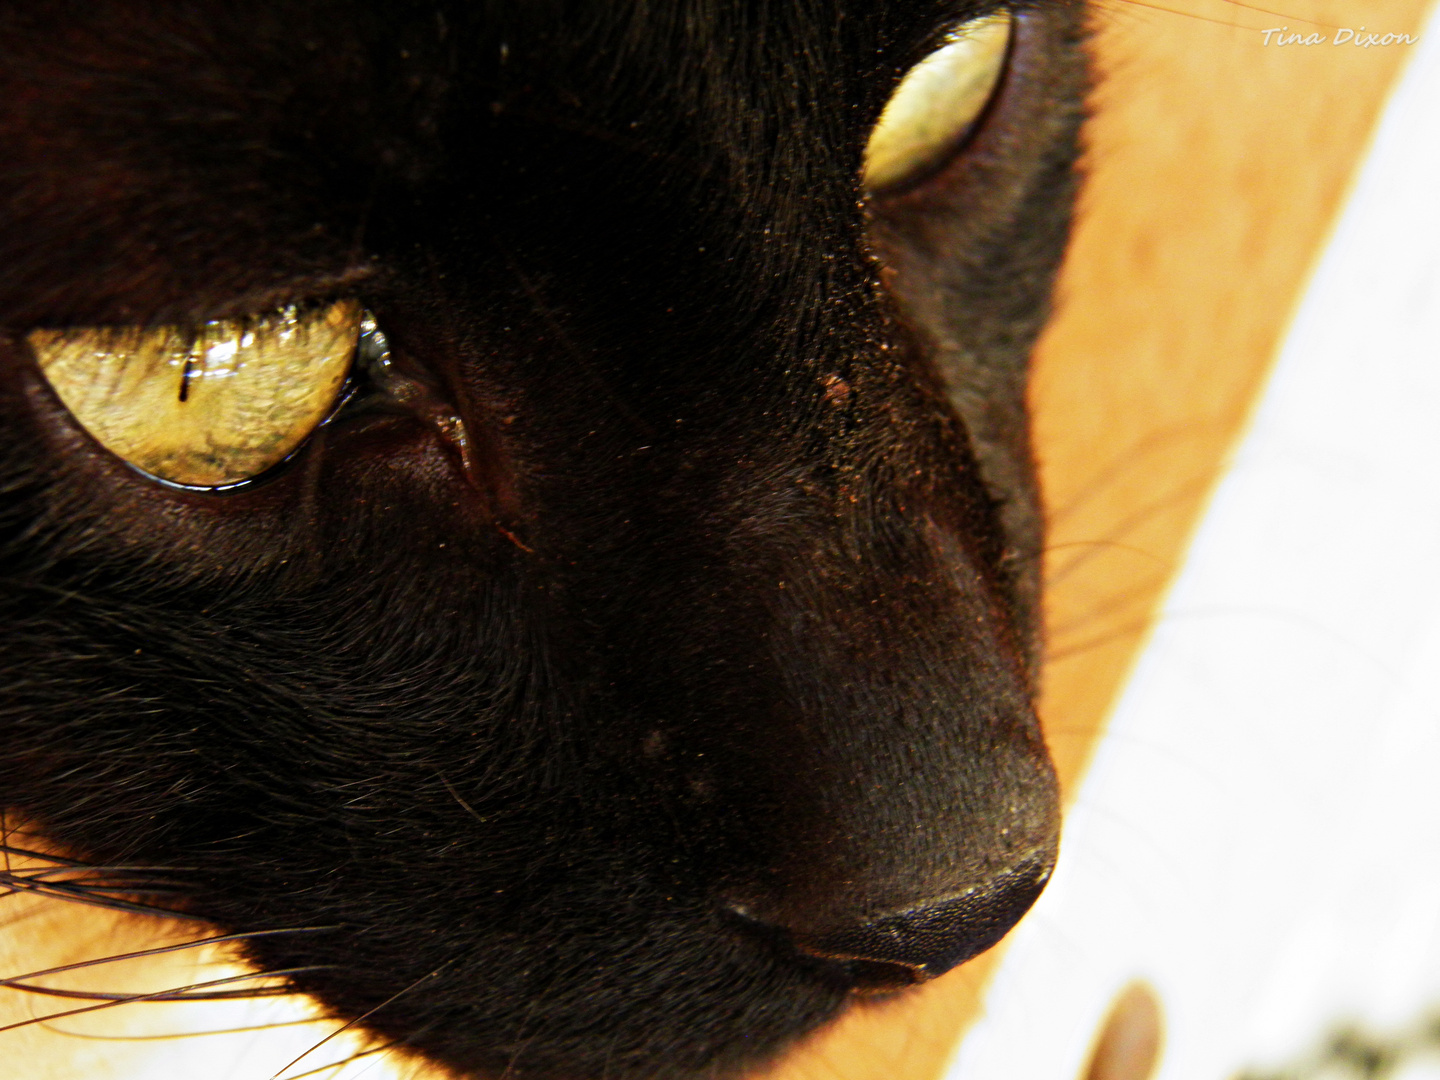 eyes of the panther